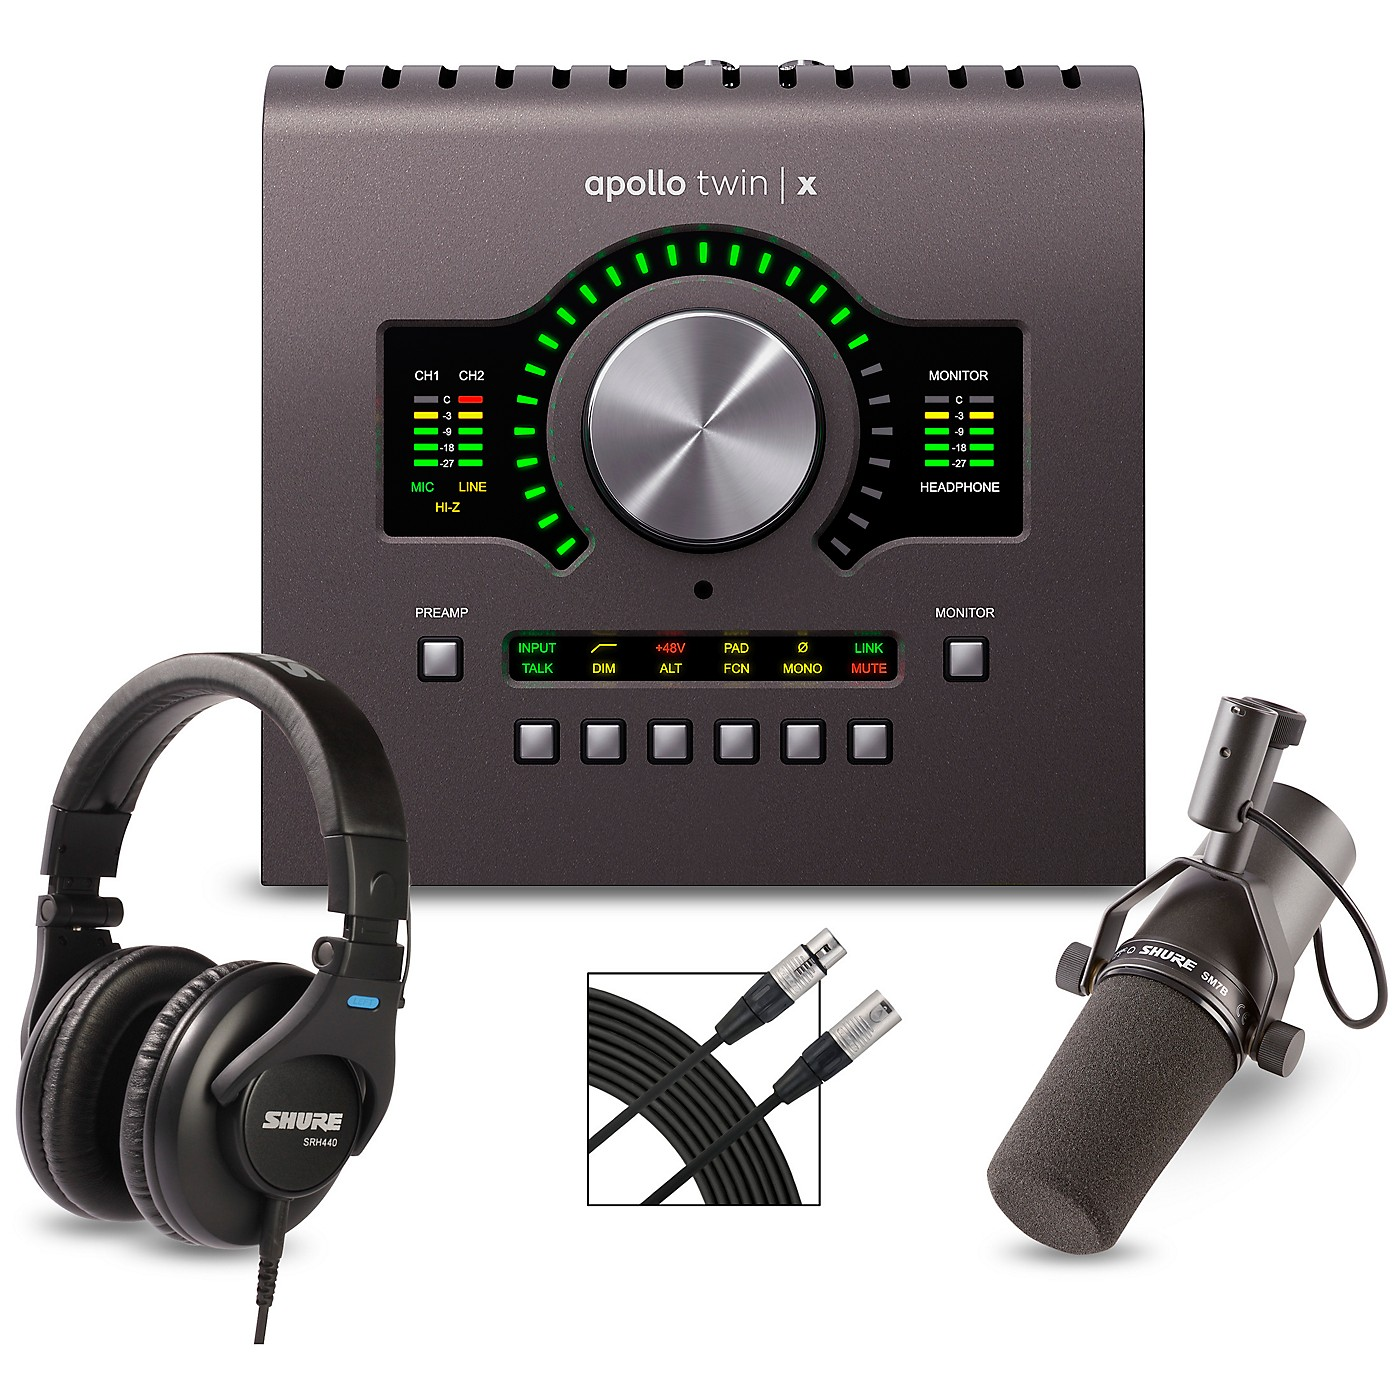 Universal Audio Apollo Twin X QUAD Heritage Edition Interface With Shure SM7B, SRH 440 and Mic Cable thumbnail